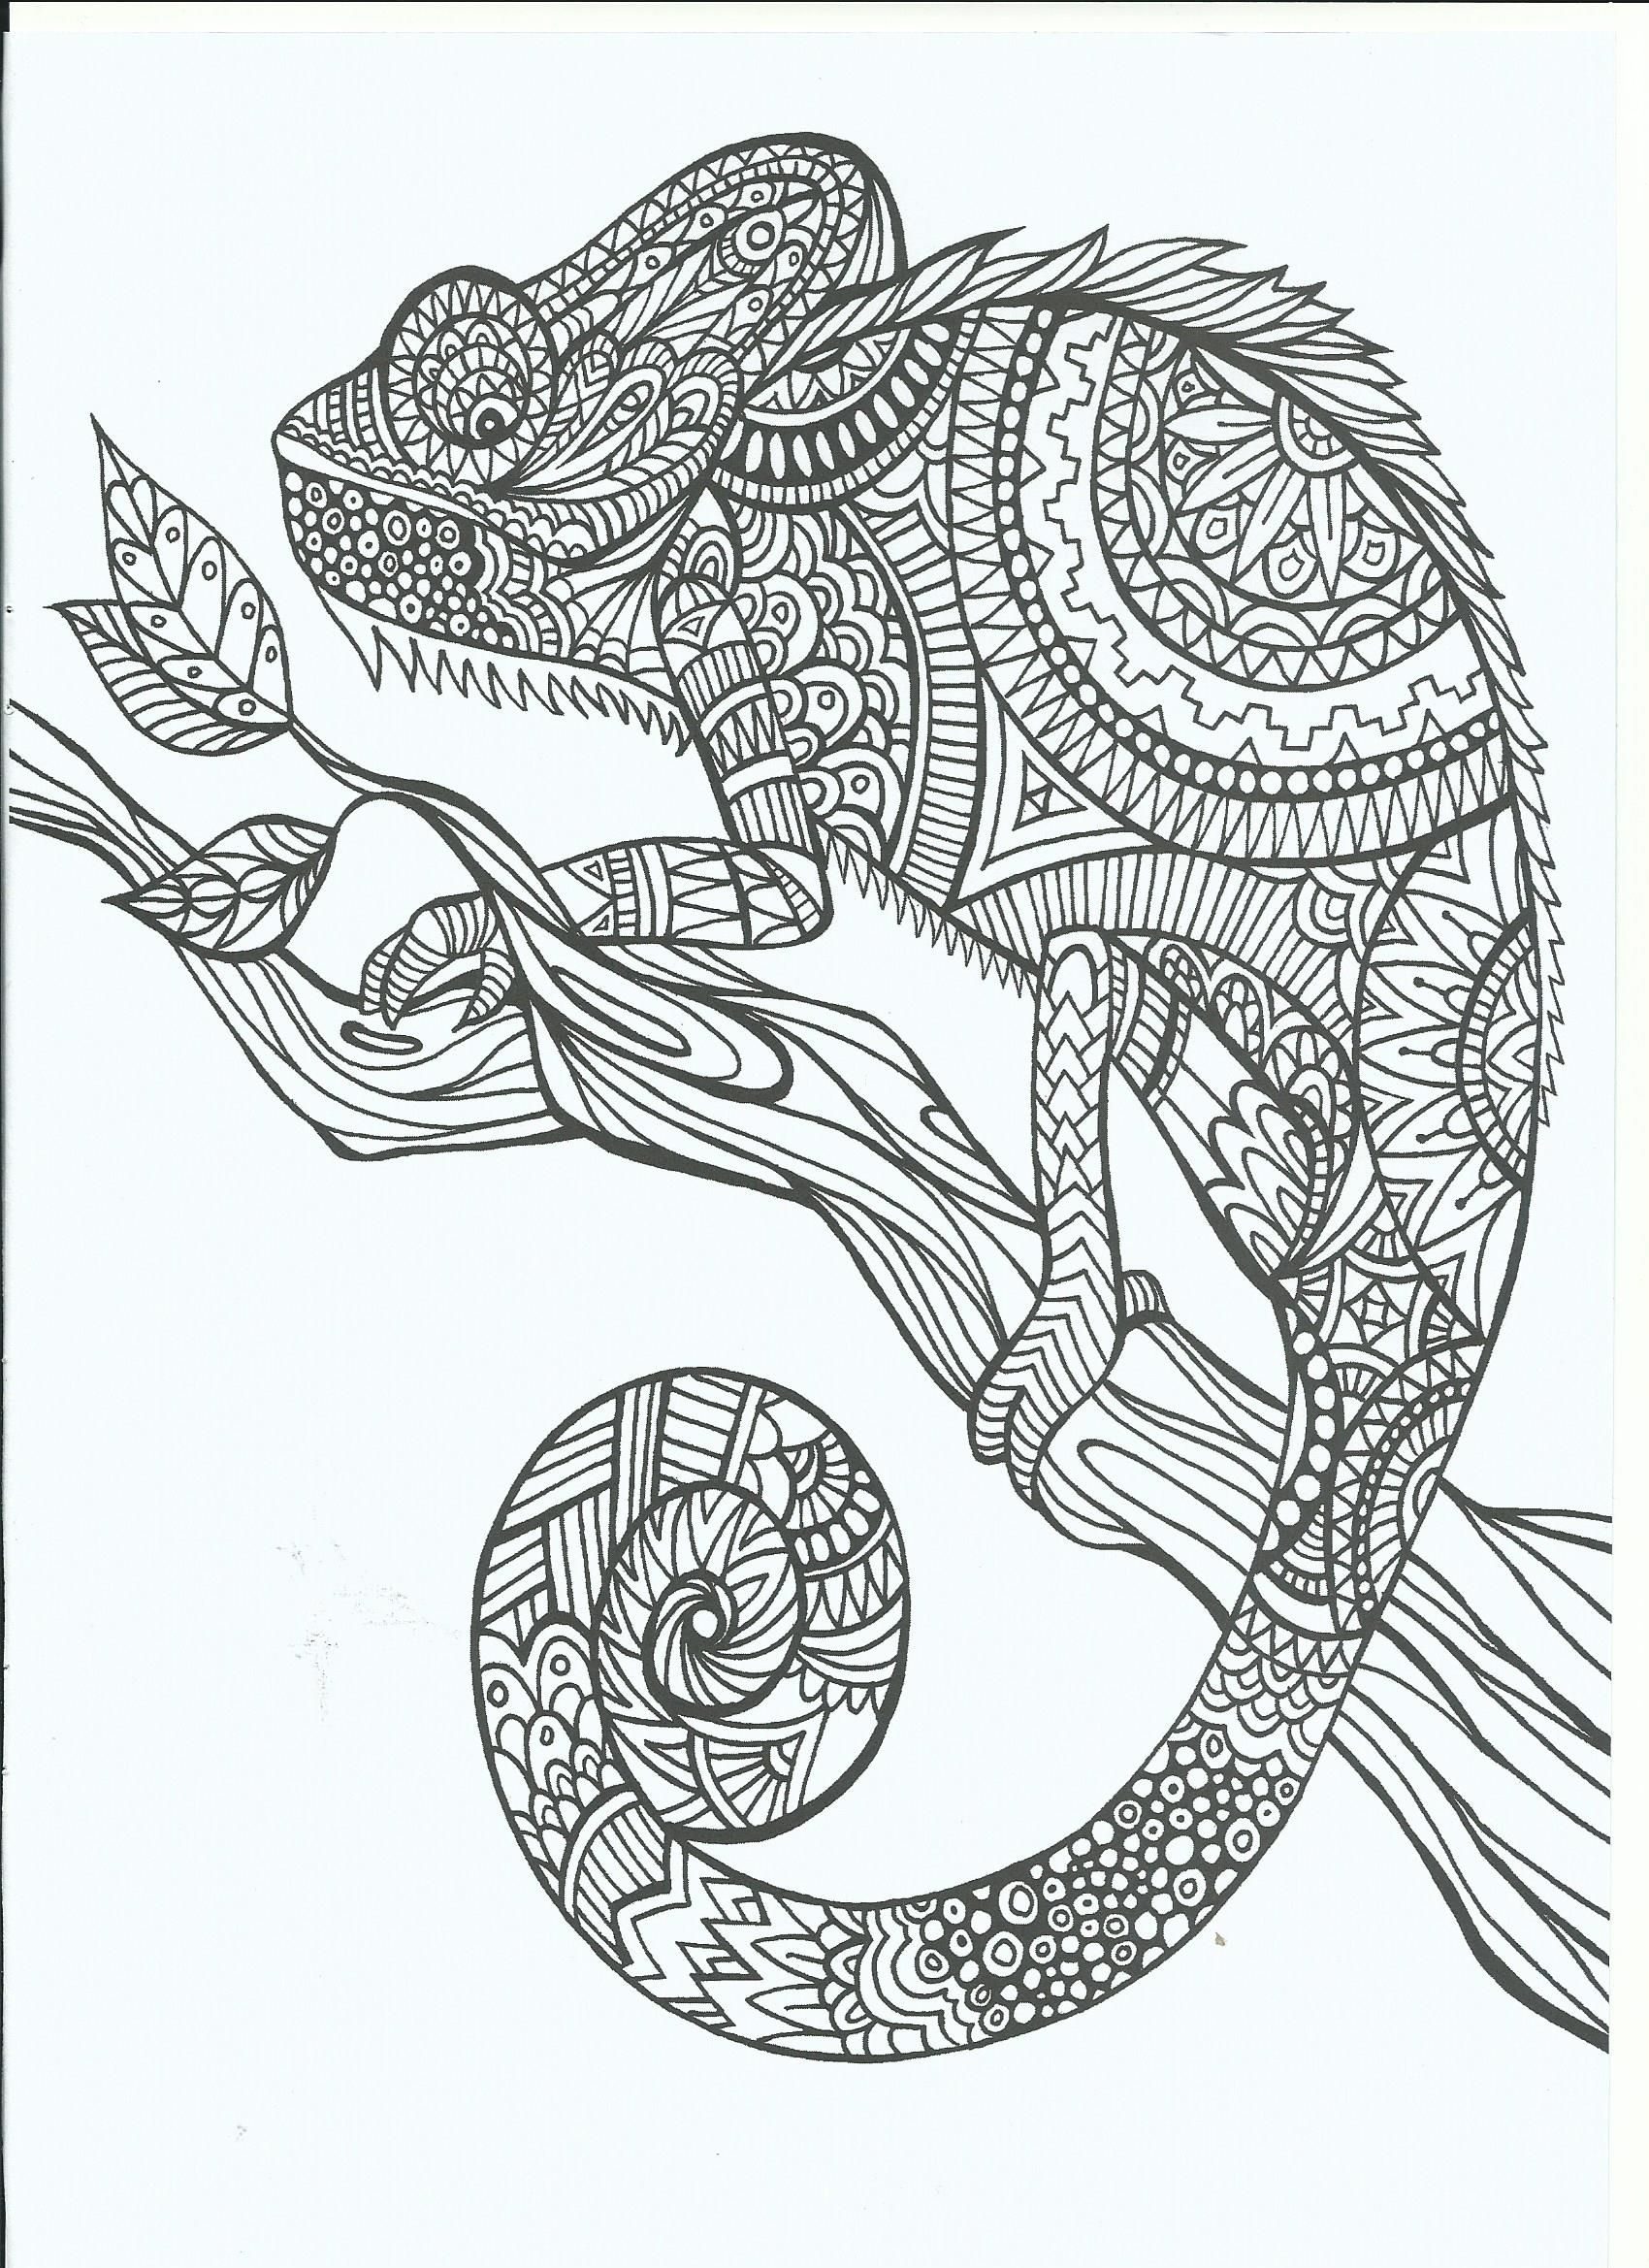 color me chameleon | Projects to Try | Pinterest | Mandalas ...